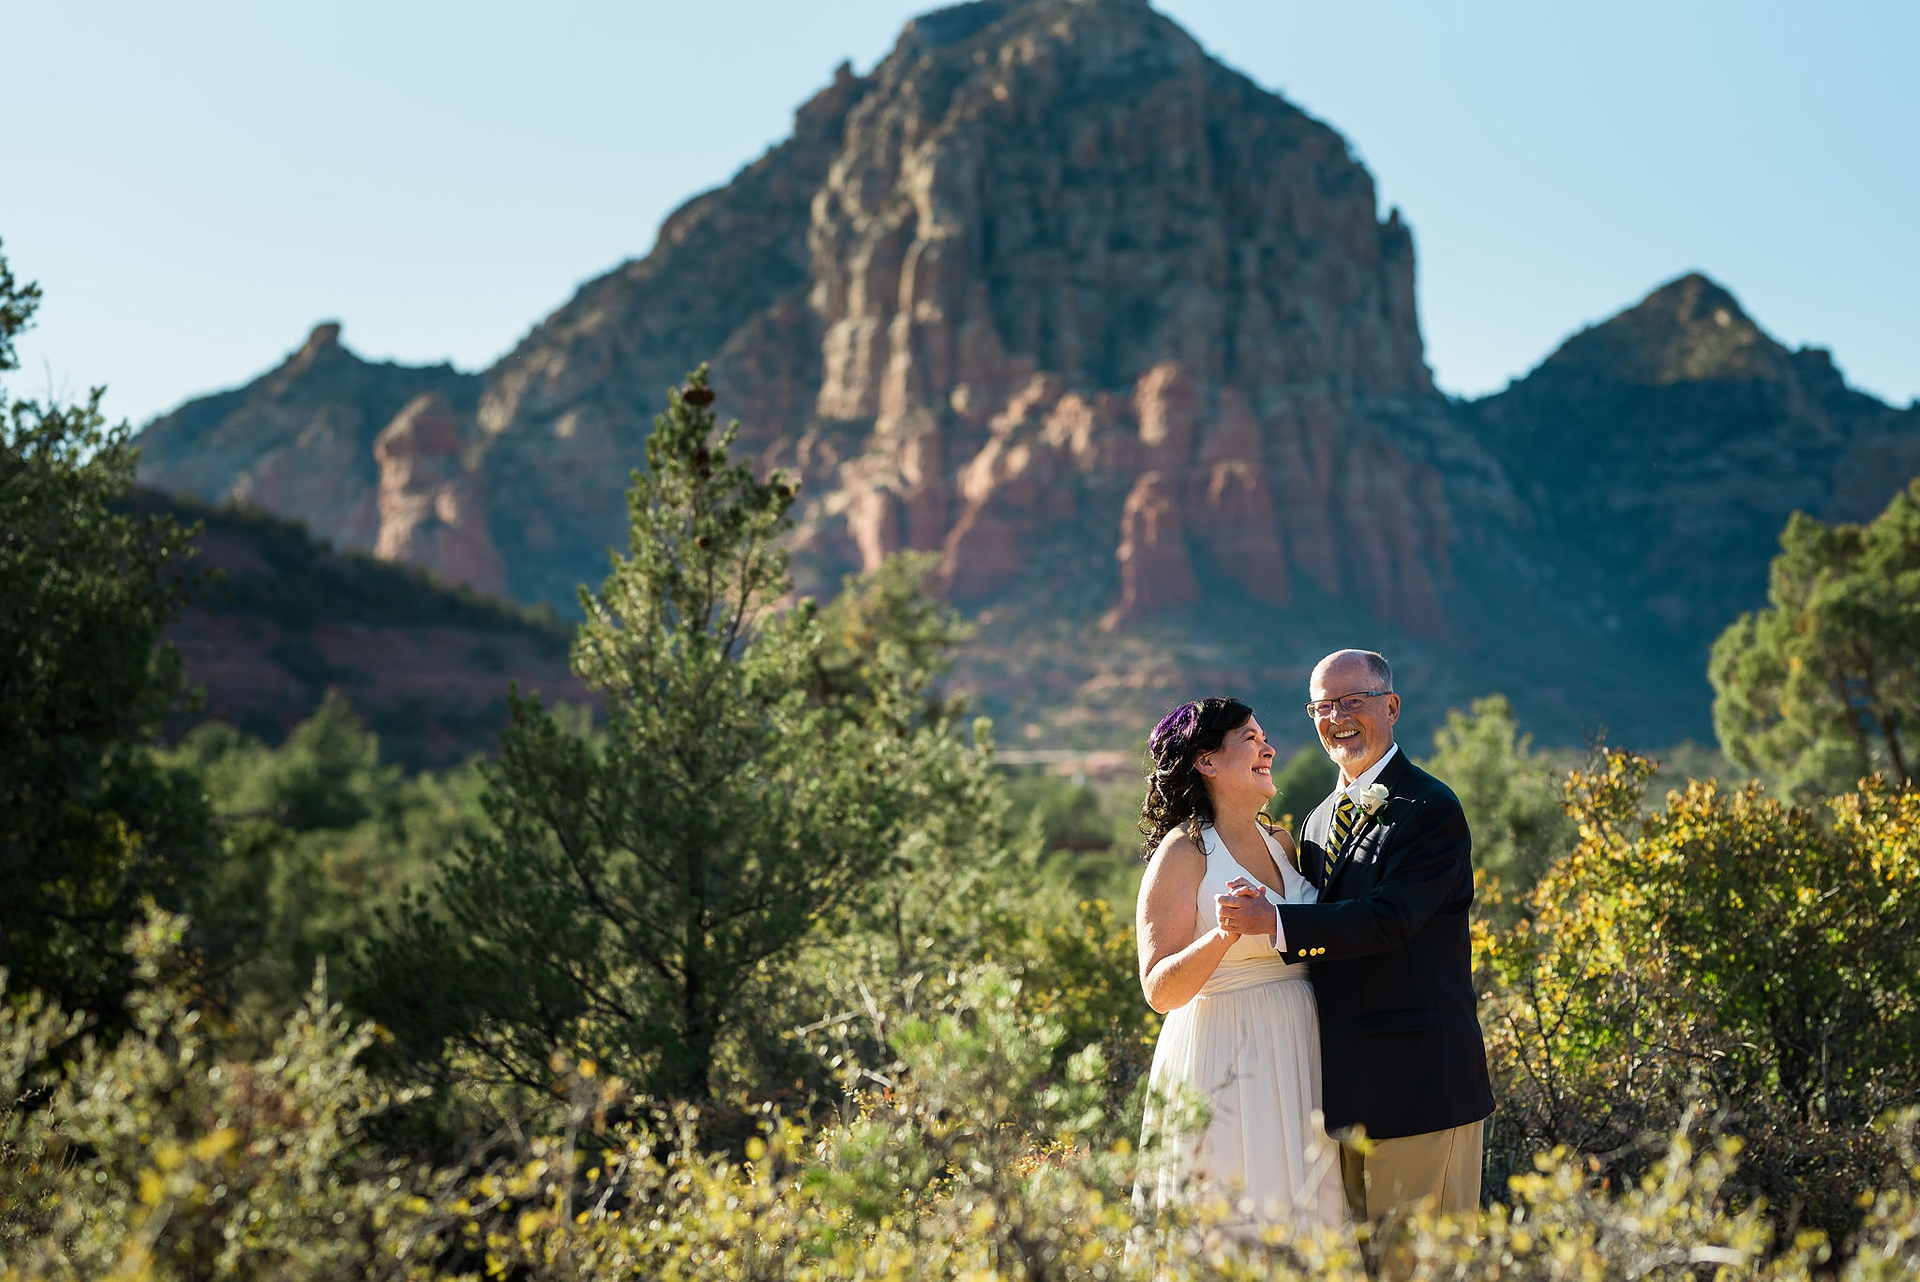 Sedona Parks and Recreation Land Wedding Couple Portrait | The newlyweds share a minute together outdoors